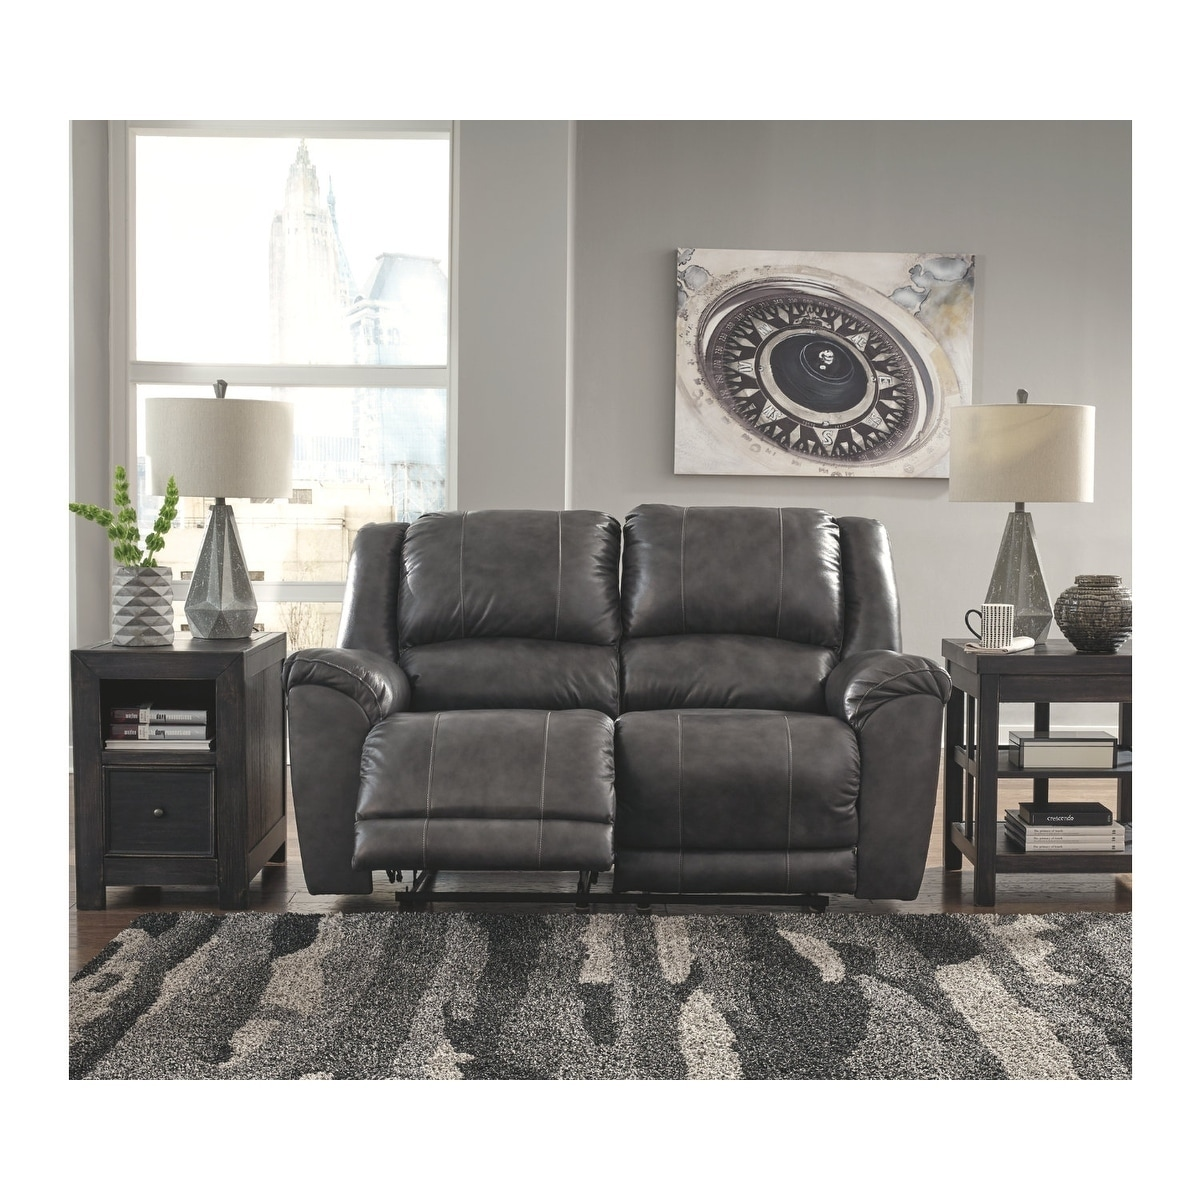 Terrific Signature Design By Ashley Charcoal Persiphone Reclining Loveseat Short Links Chair Design For Home Short Linksinfo